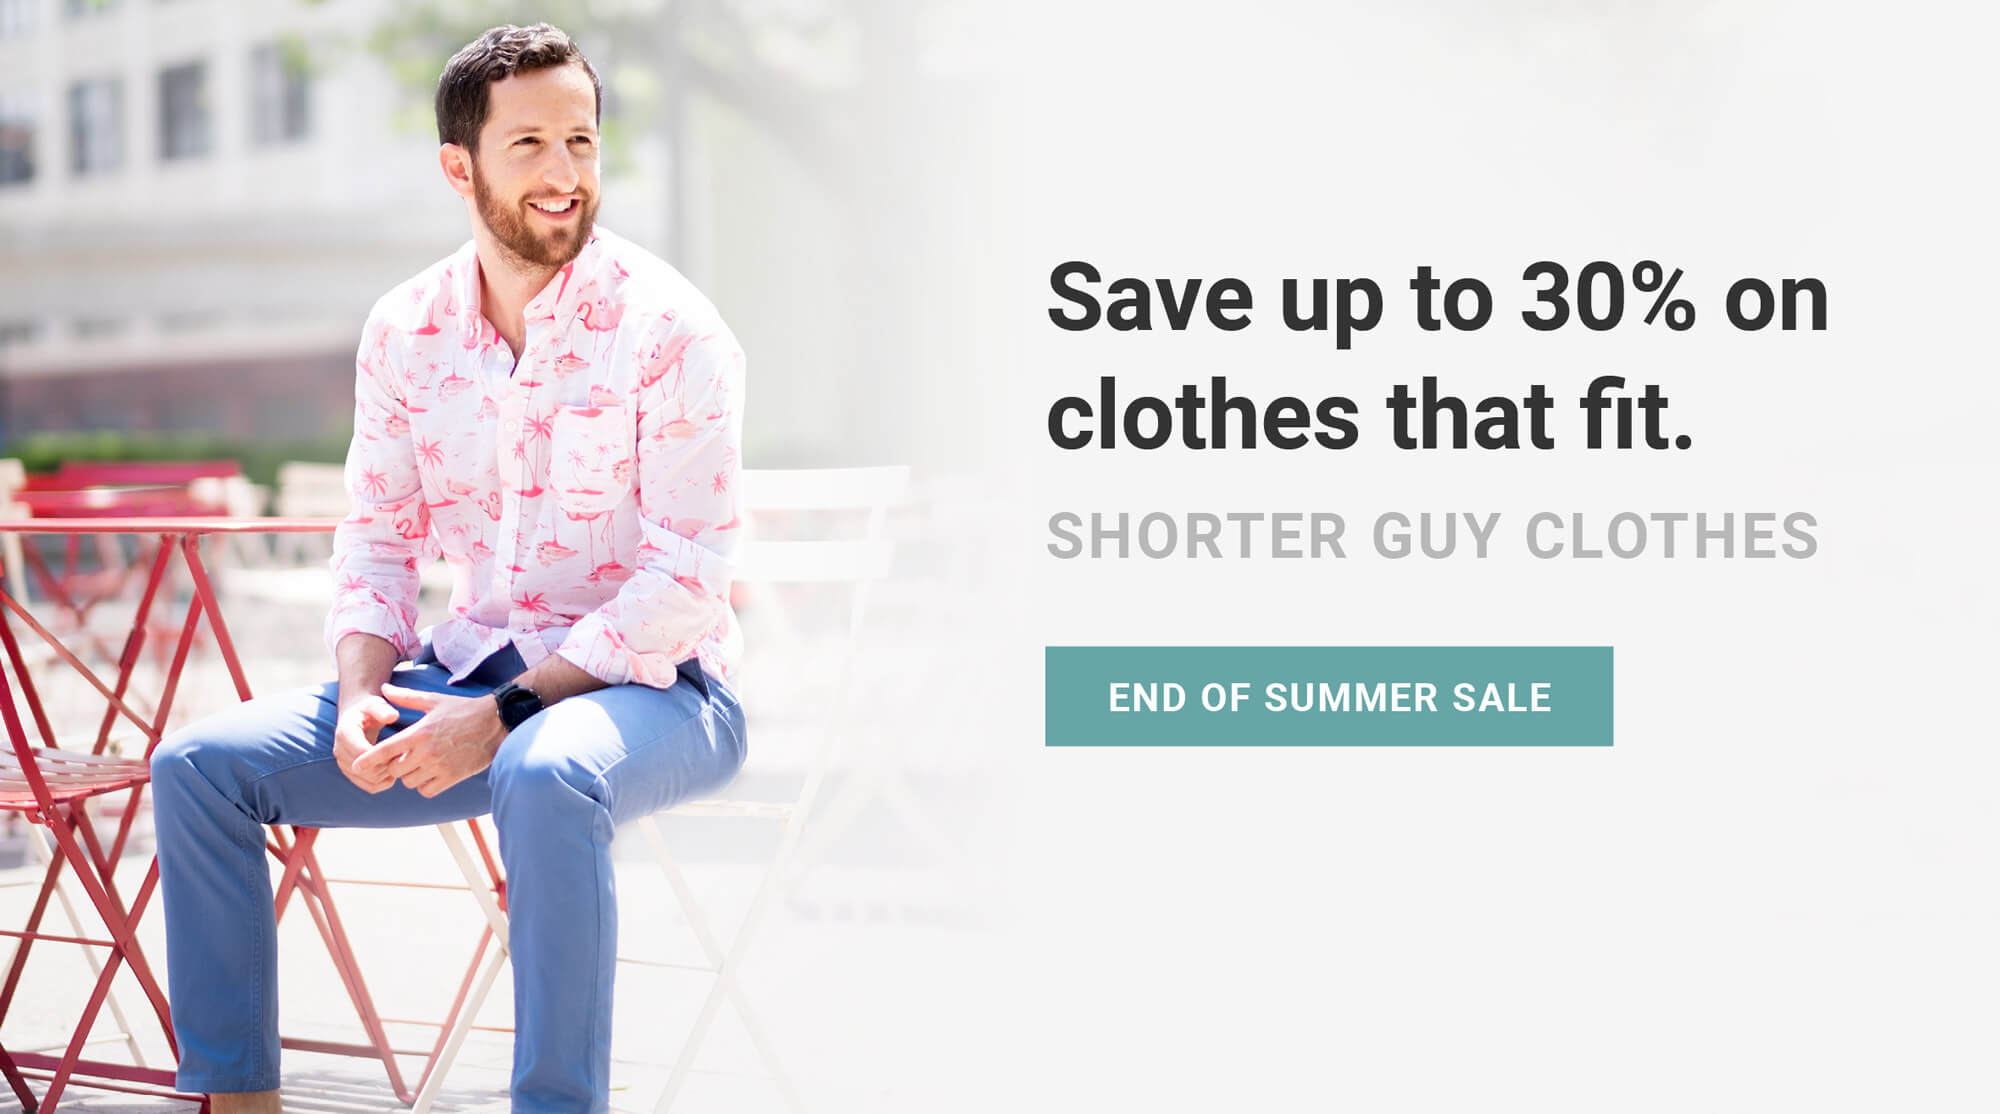 Made for men of great heights, shorter guy clothes. Hustle up and save a few bucks. The End of Summer won't last forever. Limited time only.